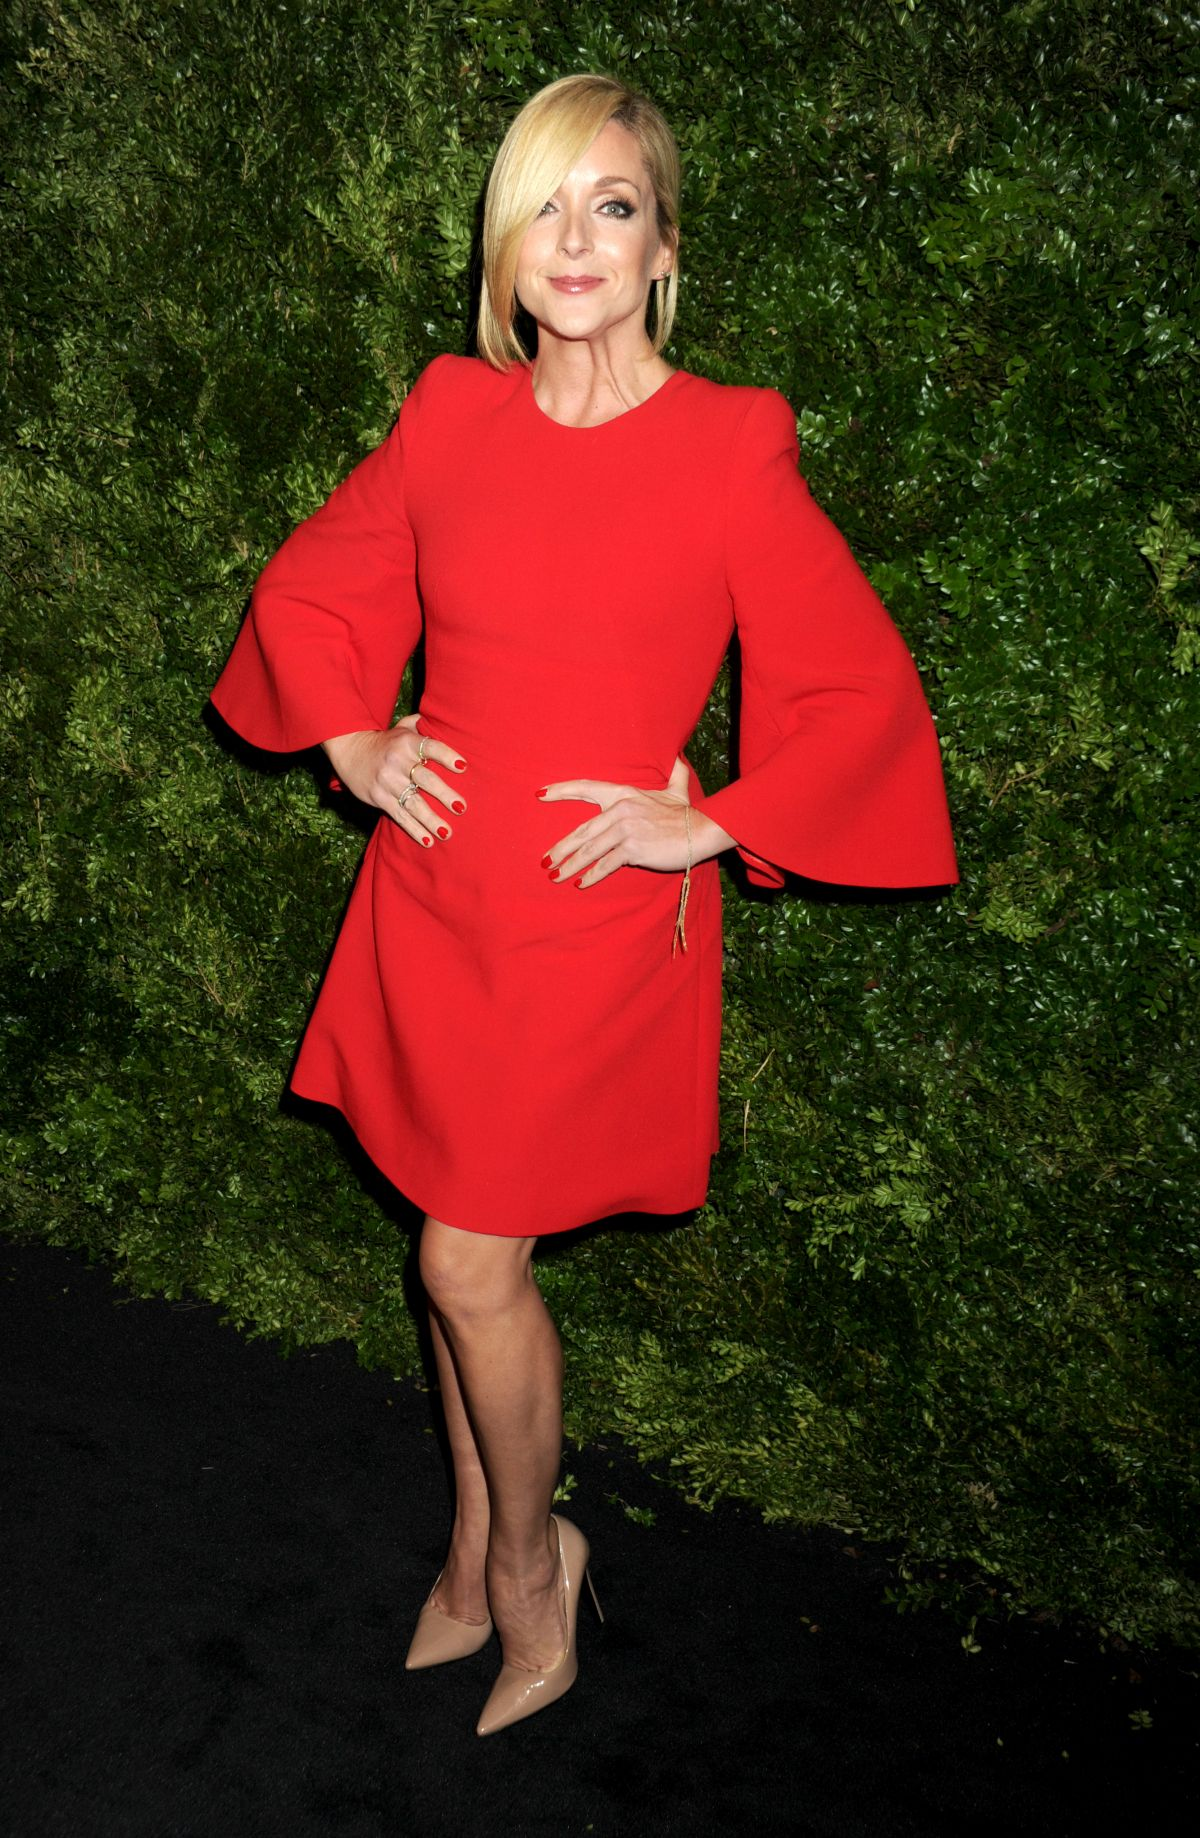 JANE KRAKOWSKI at Museum of Modern Art Film Benefit Honoring Cate Blanchett in New York 11/17/2015